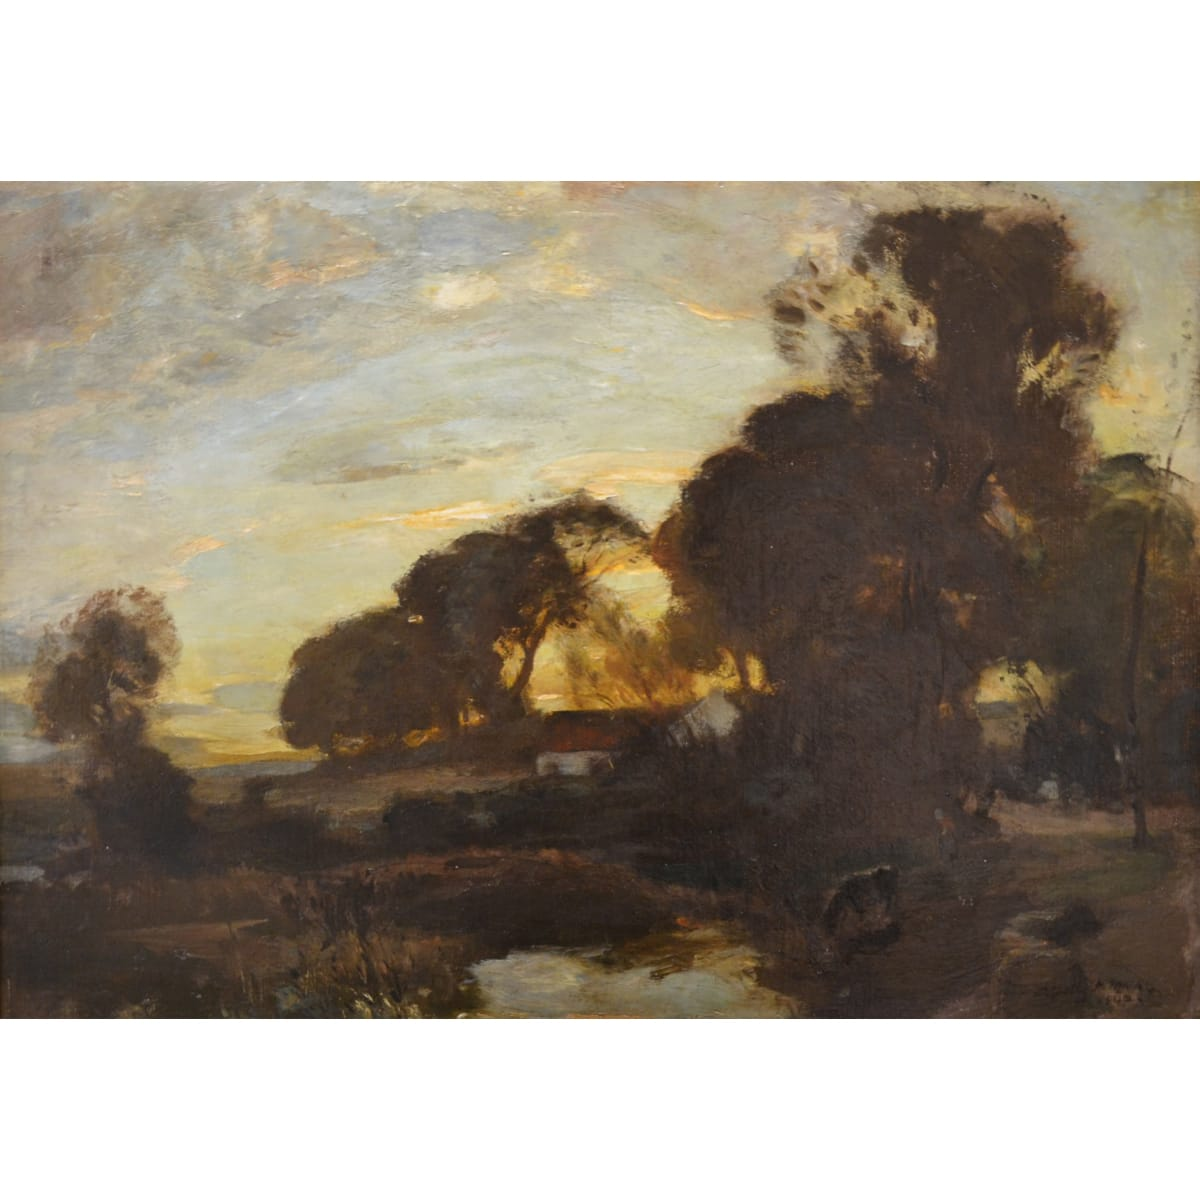 Charles Hodge Mackie A farmstead at sunset, 1900 signed and dated 1900 oil on canvas 17 x 24 inches